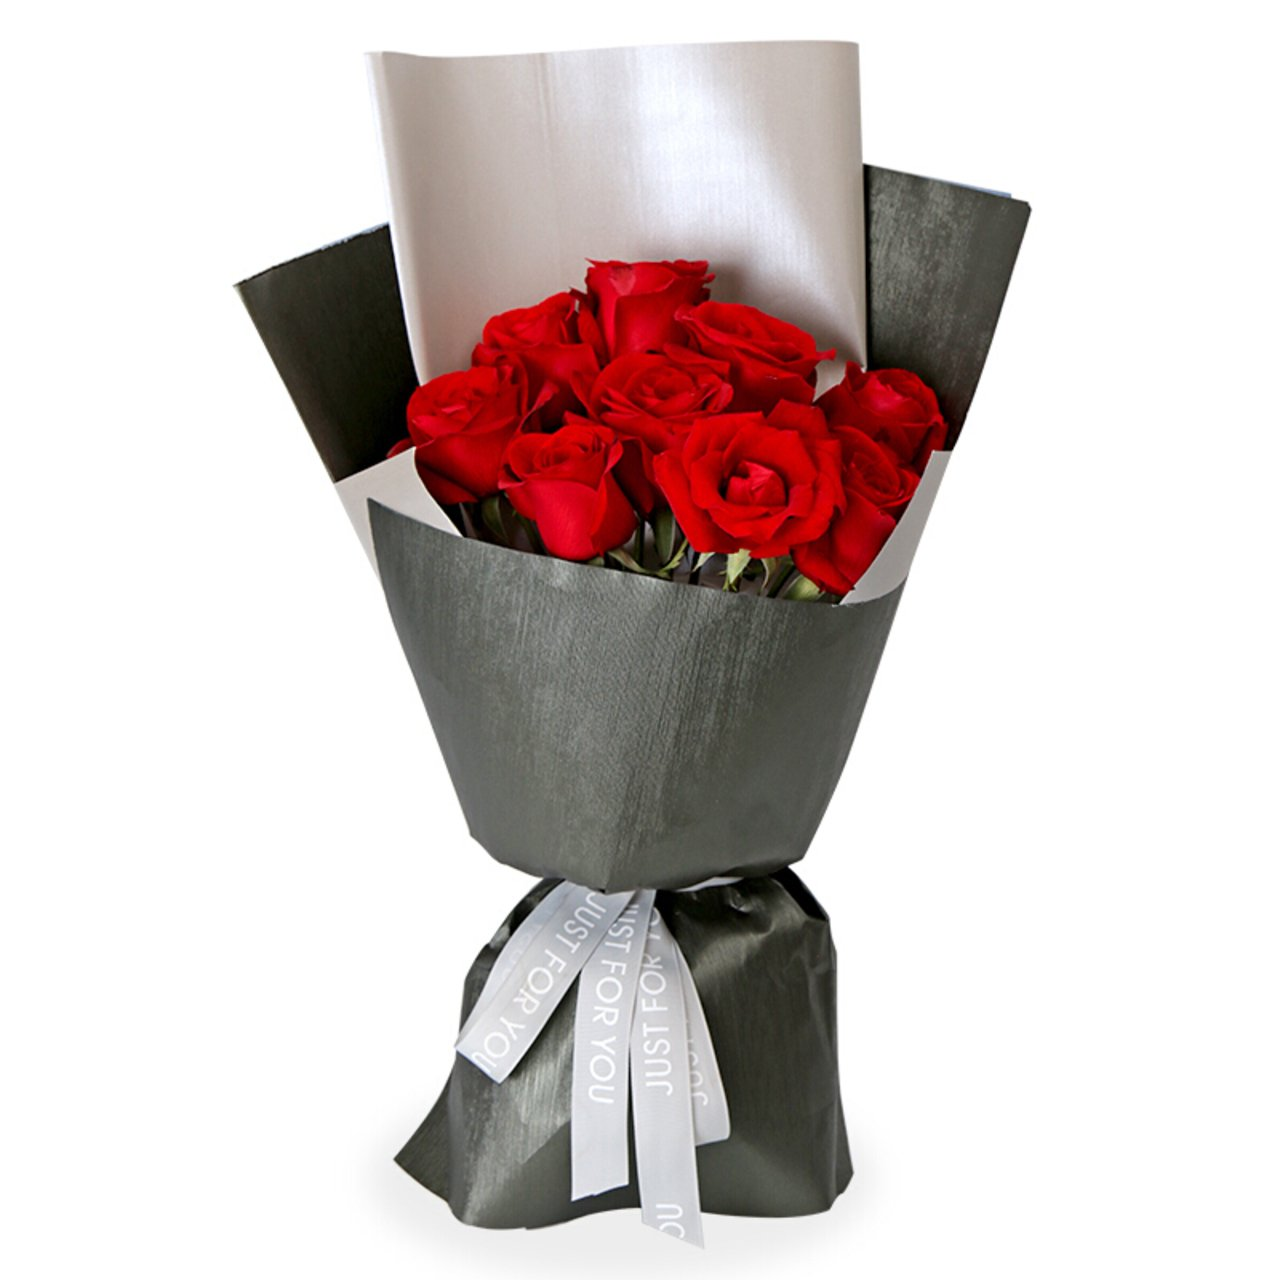 Lasting oath( A selection of 9 high-quality red roses.   -